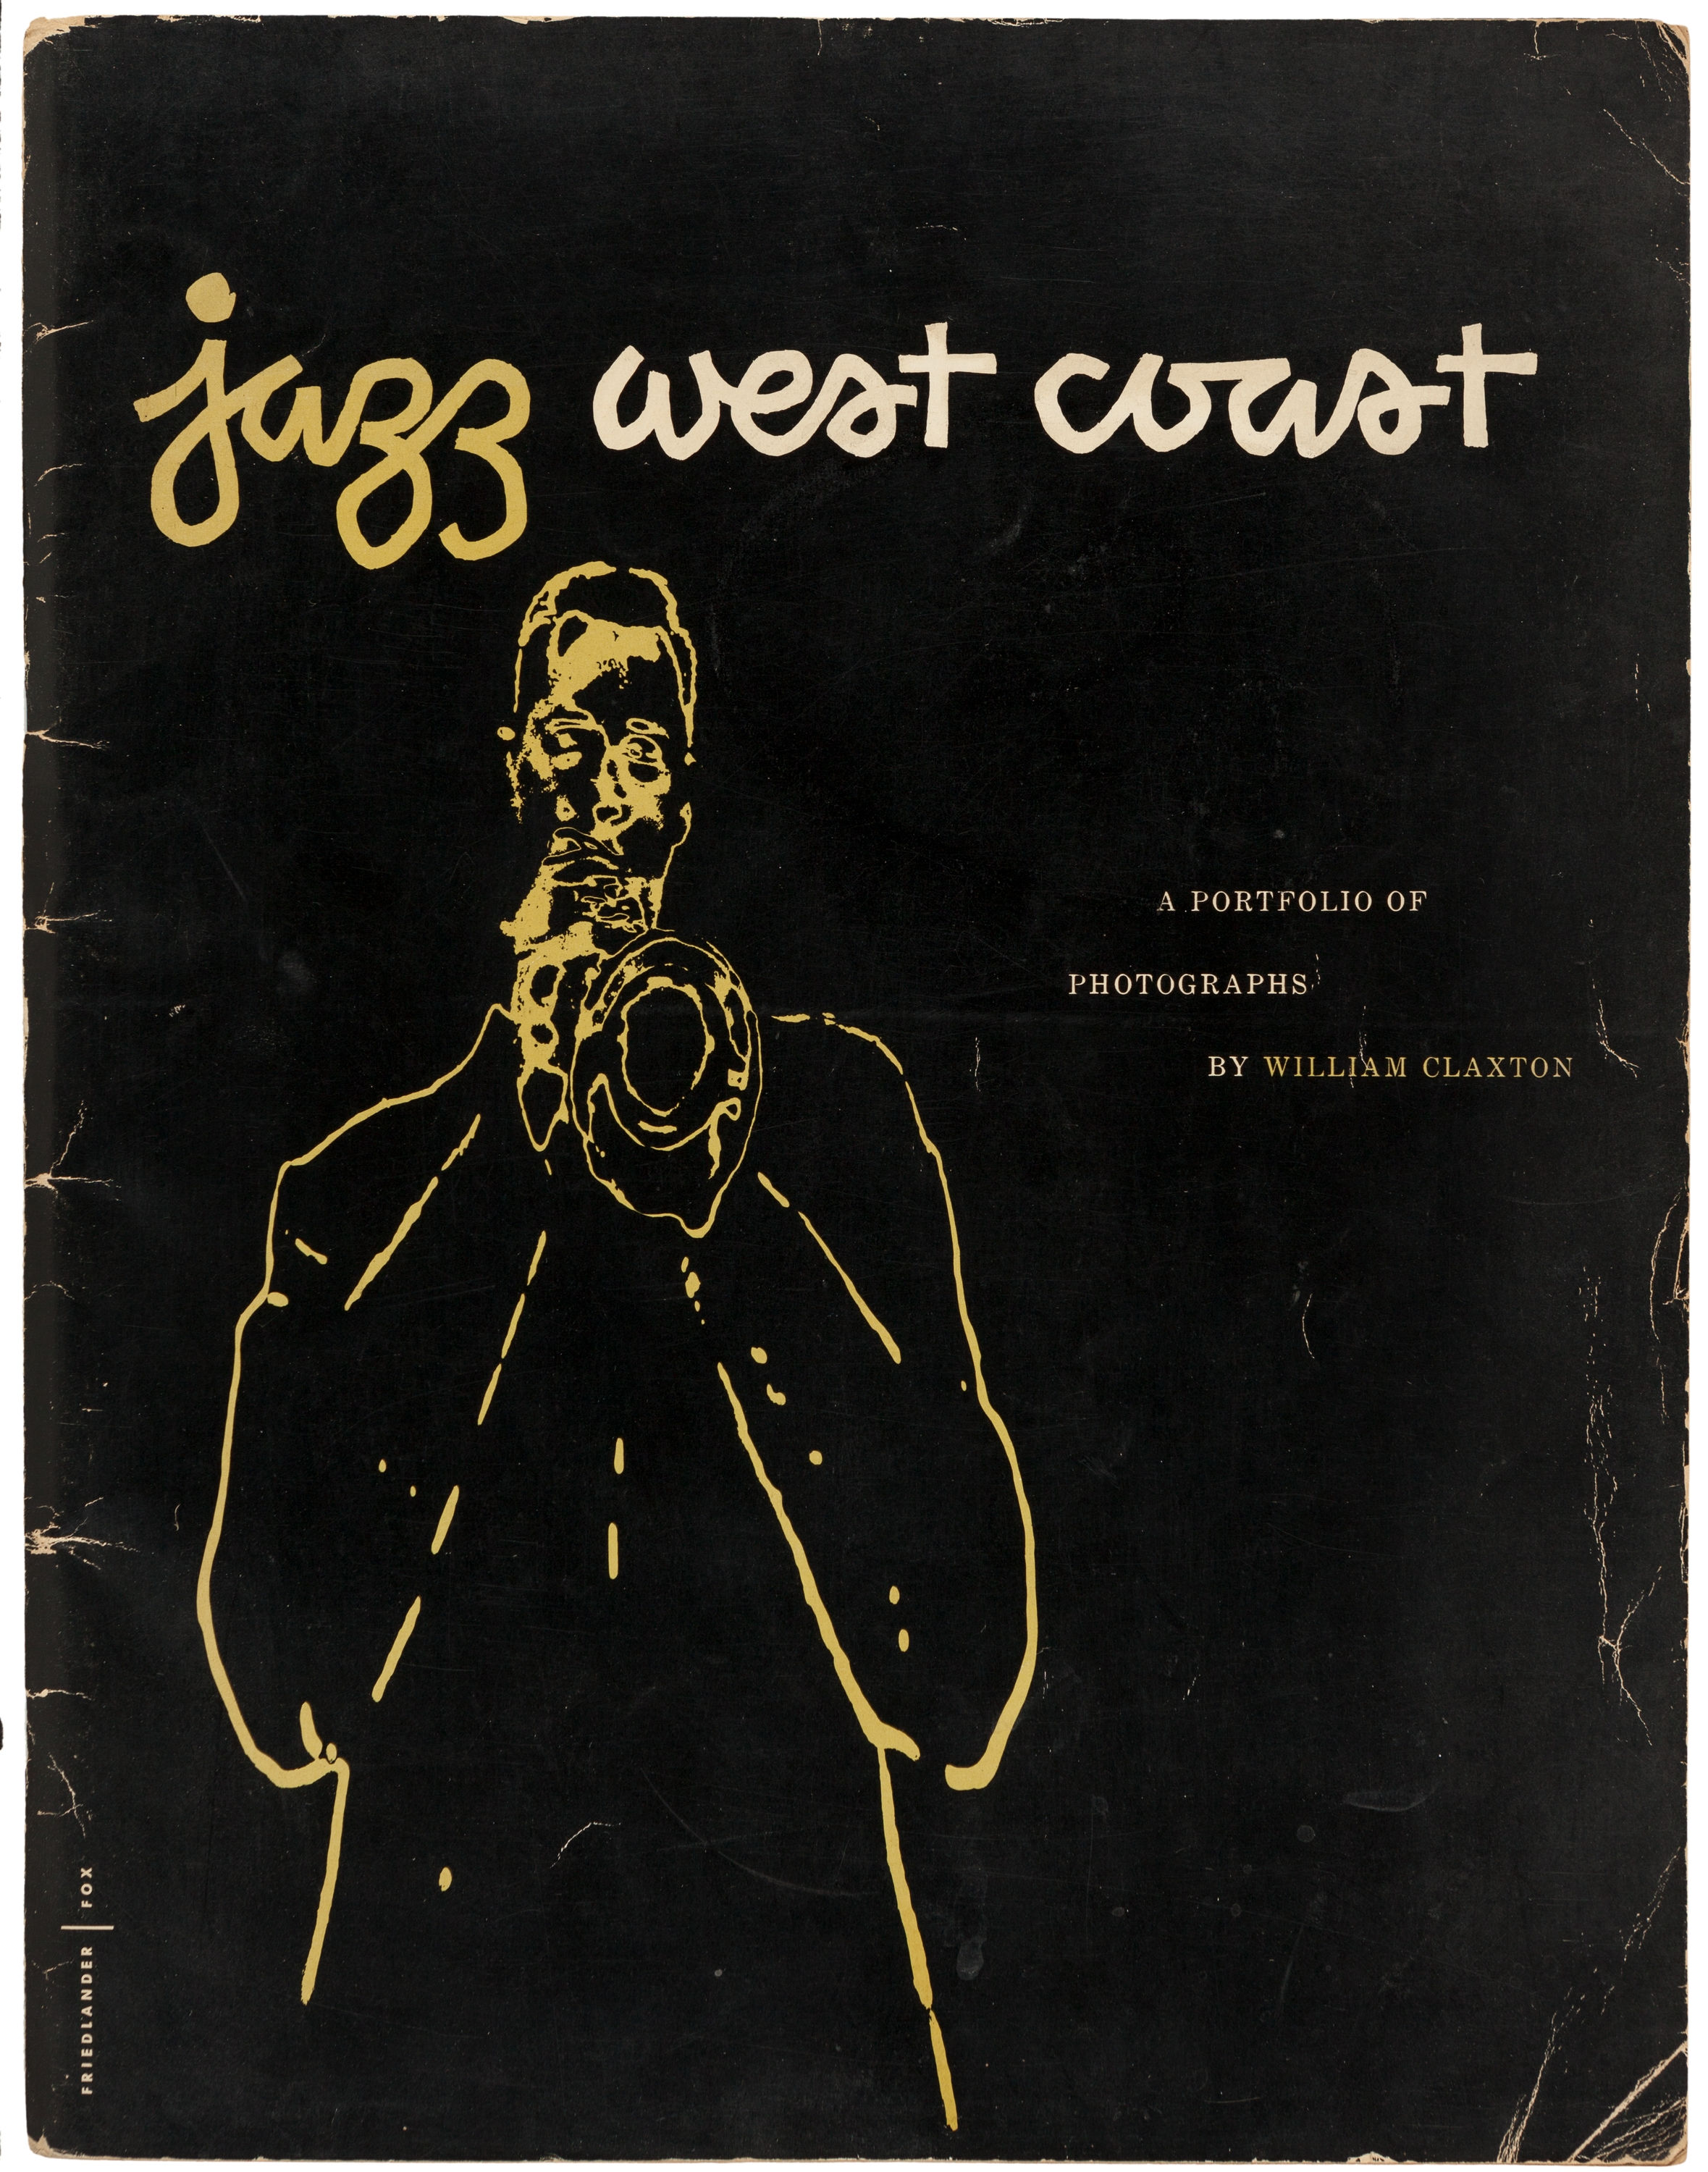 [William Claxton, photographer]. Jazz West Coast. A portfolio of photographs by William Claxton. Hollywood: Linear Productions, 1954. First edition, signed by Claxton.